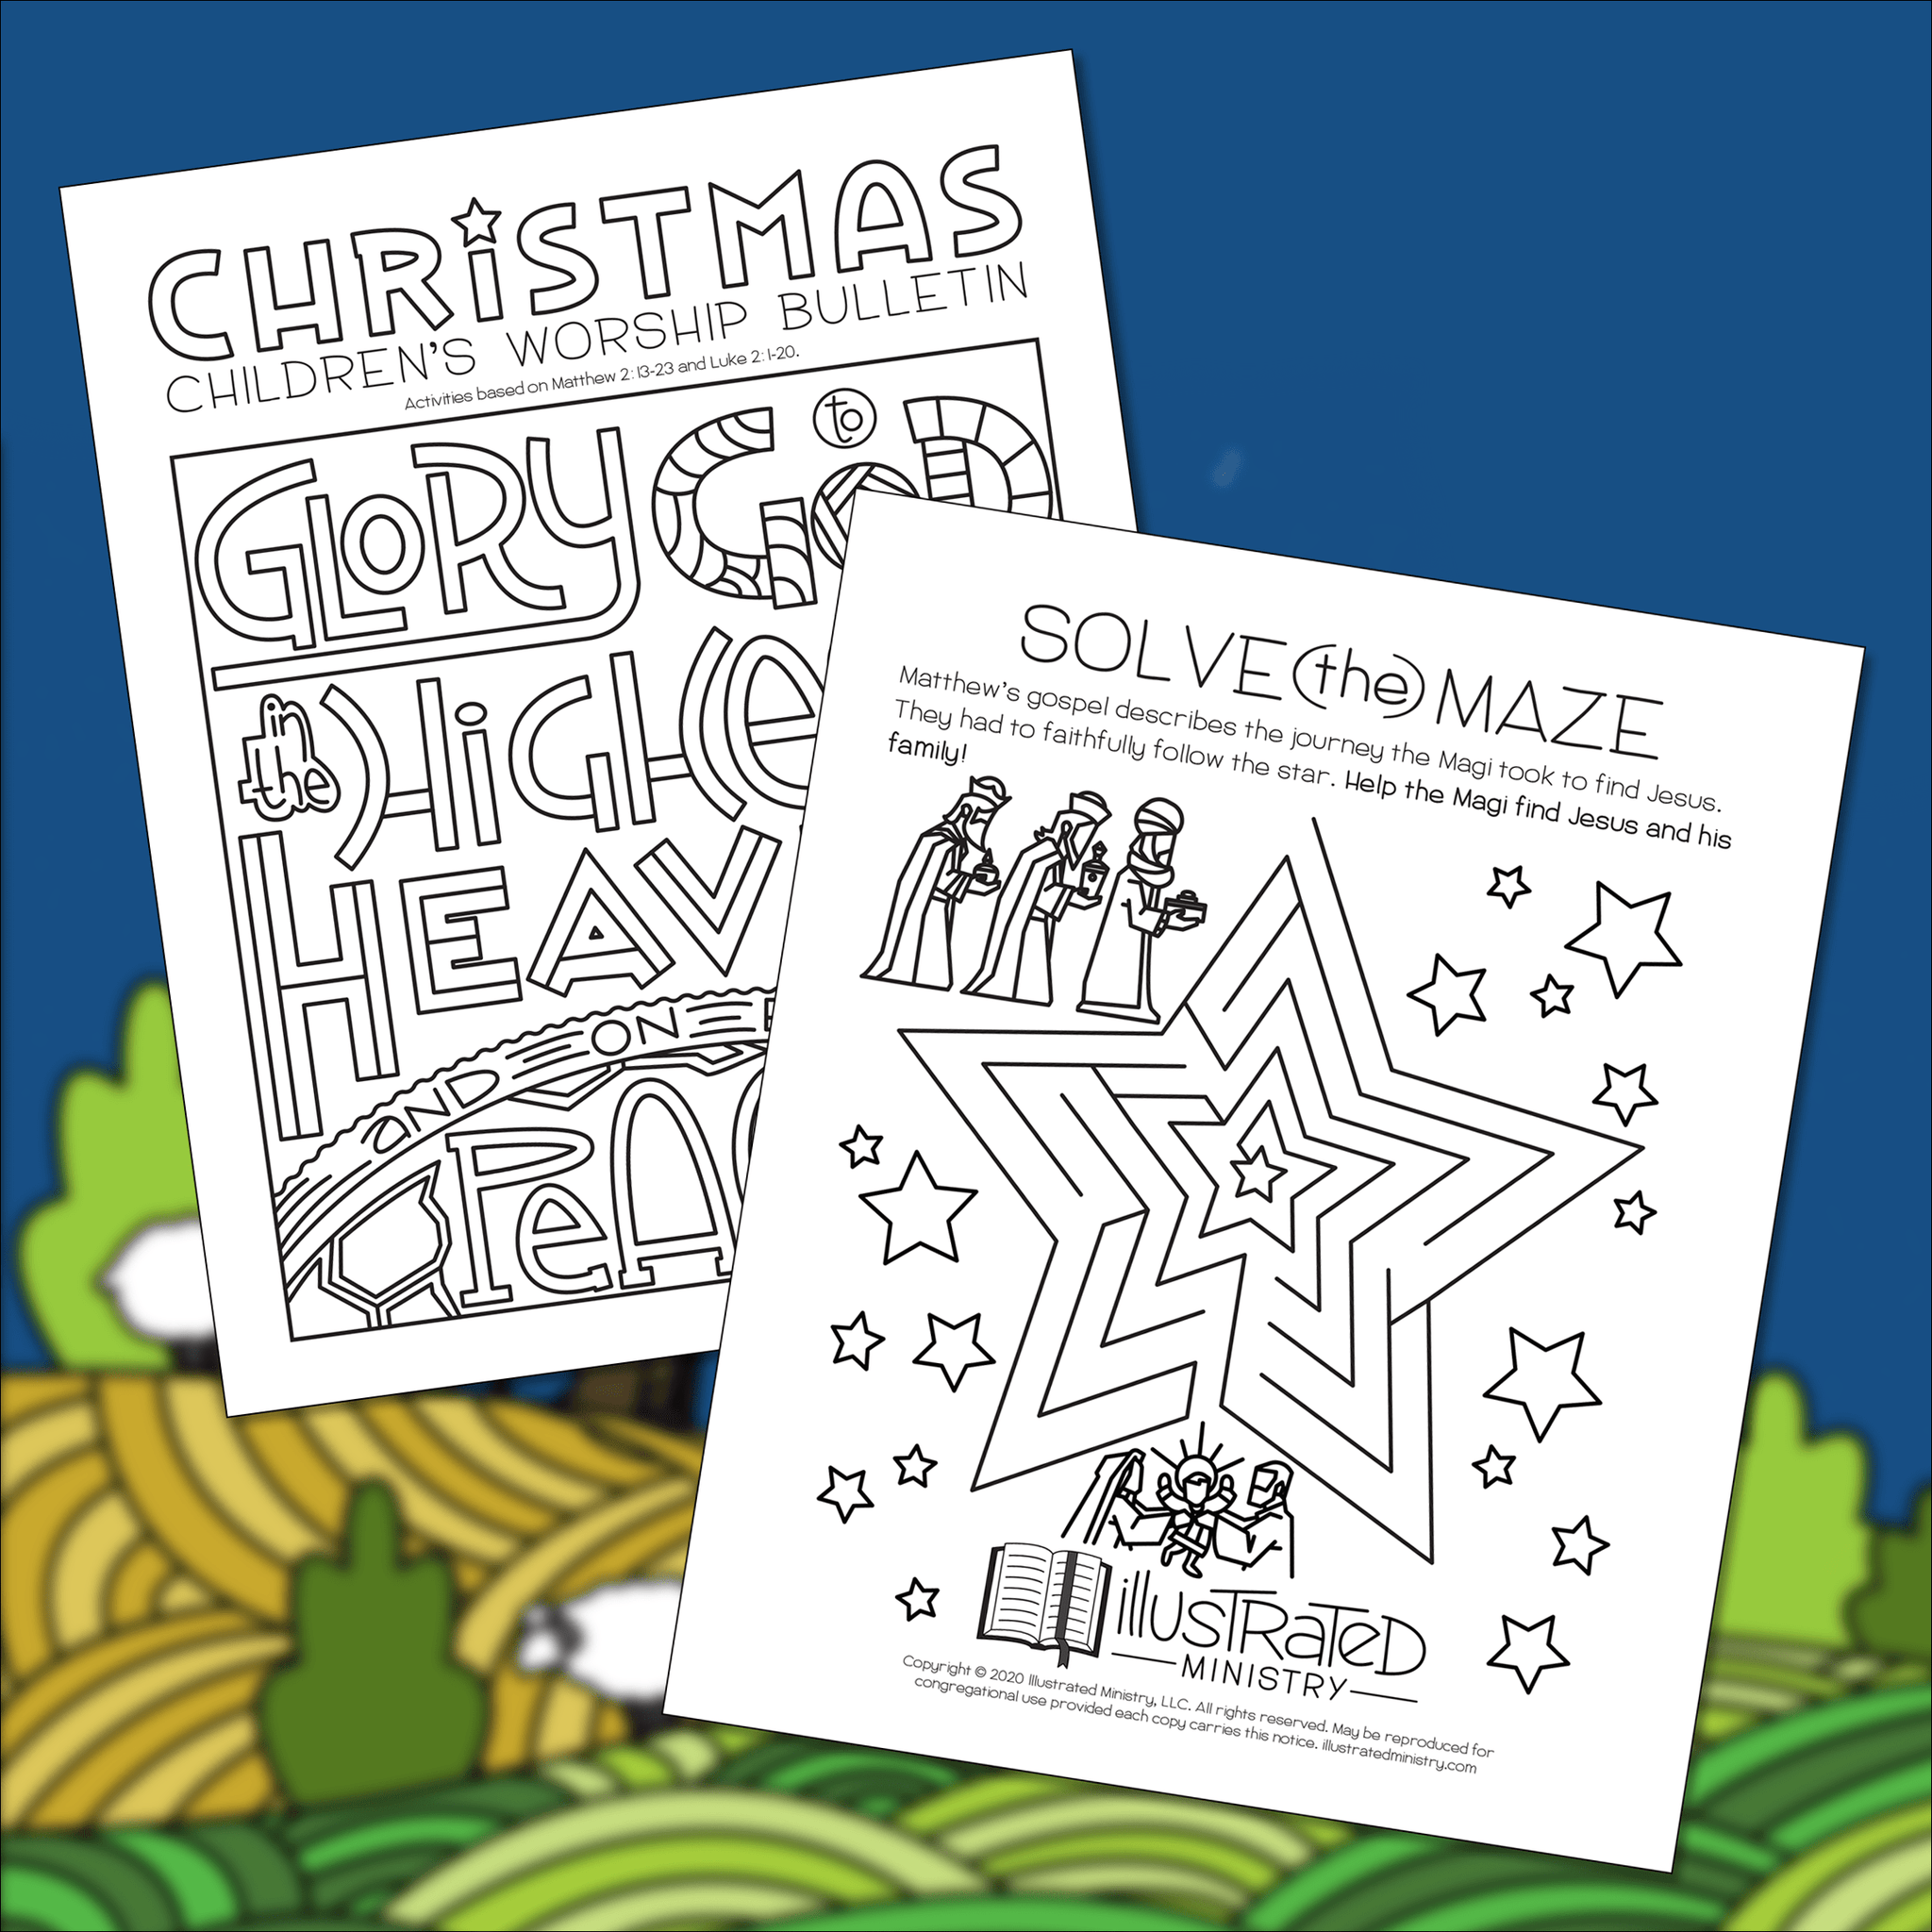 Illustrated Christmas Children's Worship Bulletin